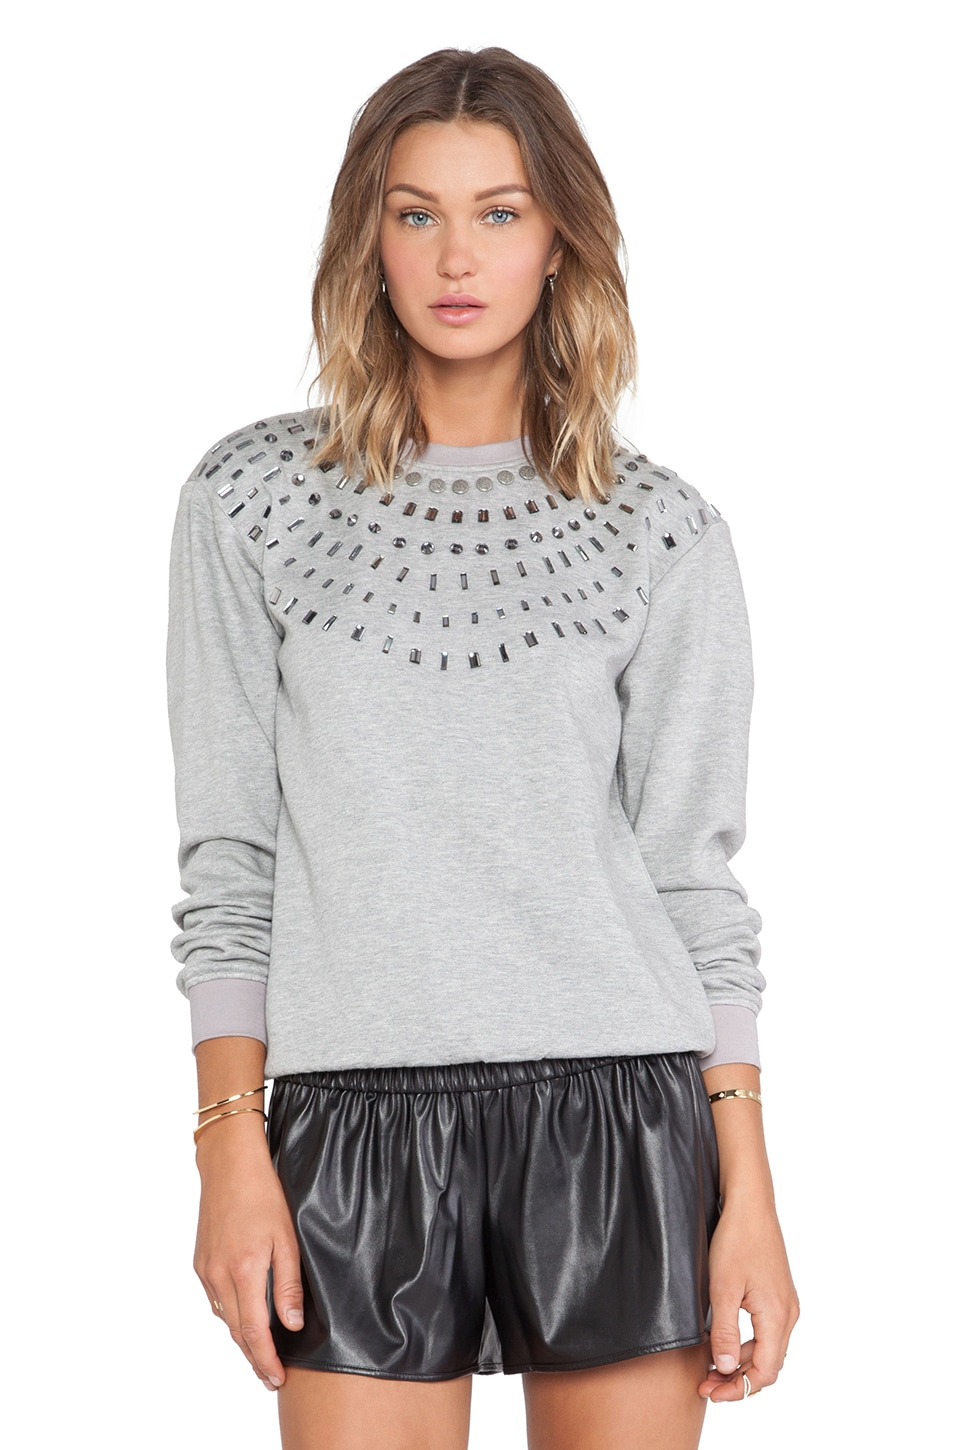 HEMANT AND NANDITA Crystal Sweatshirt in Light Grey